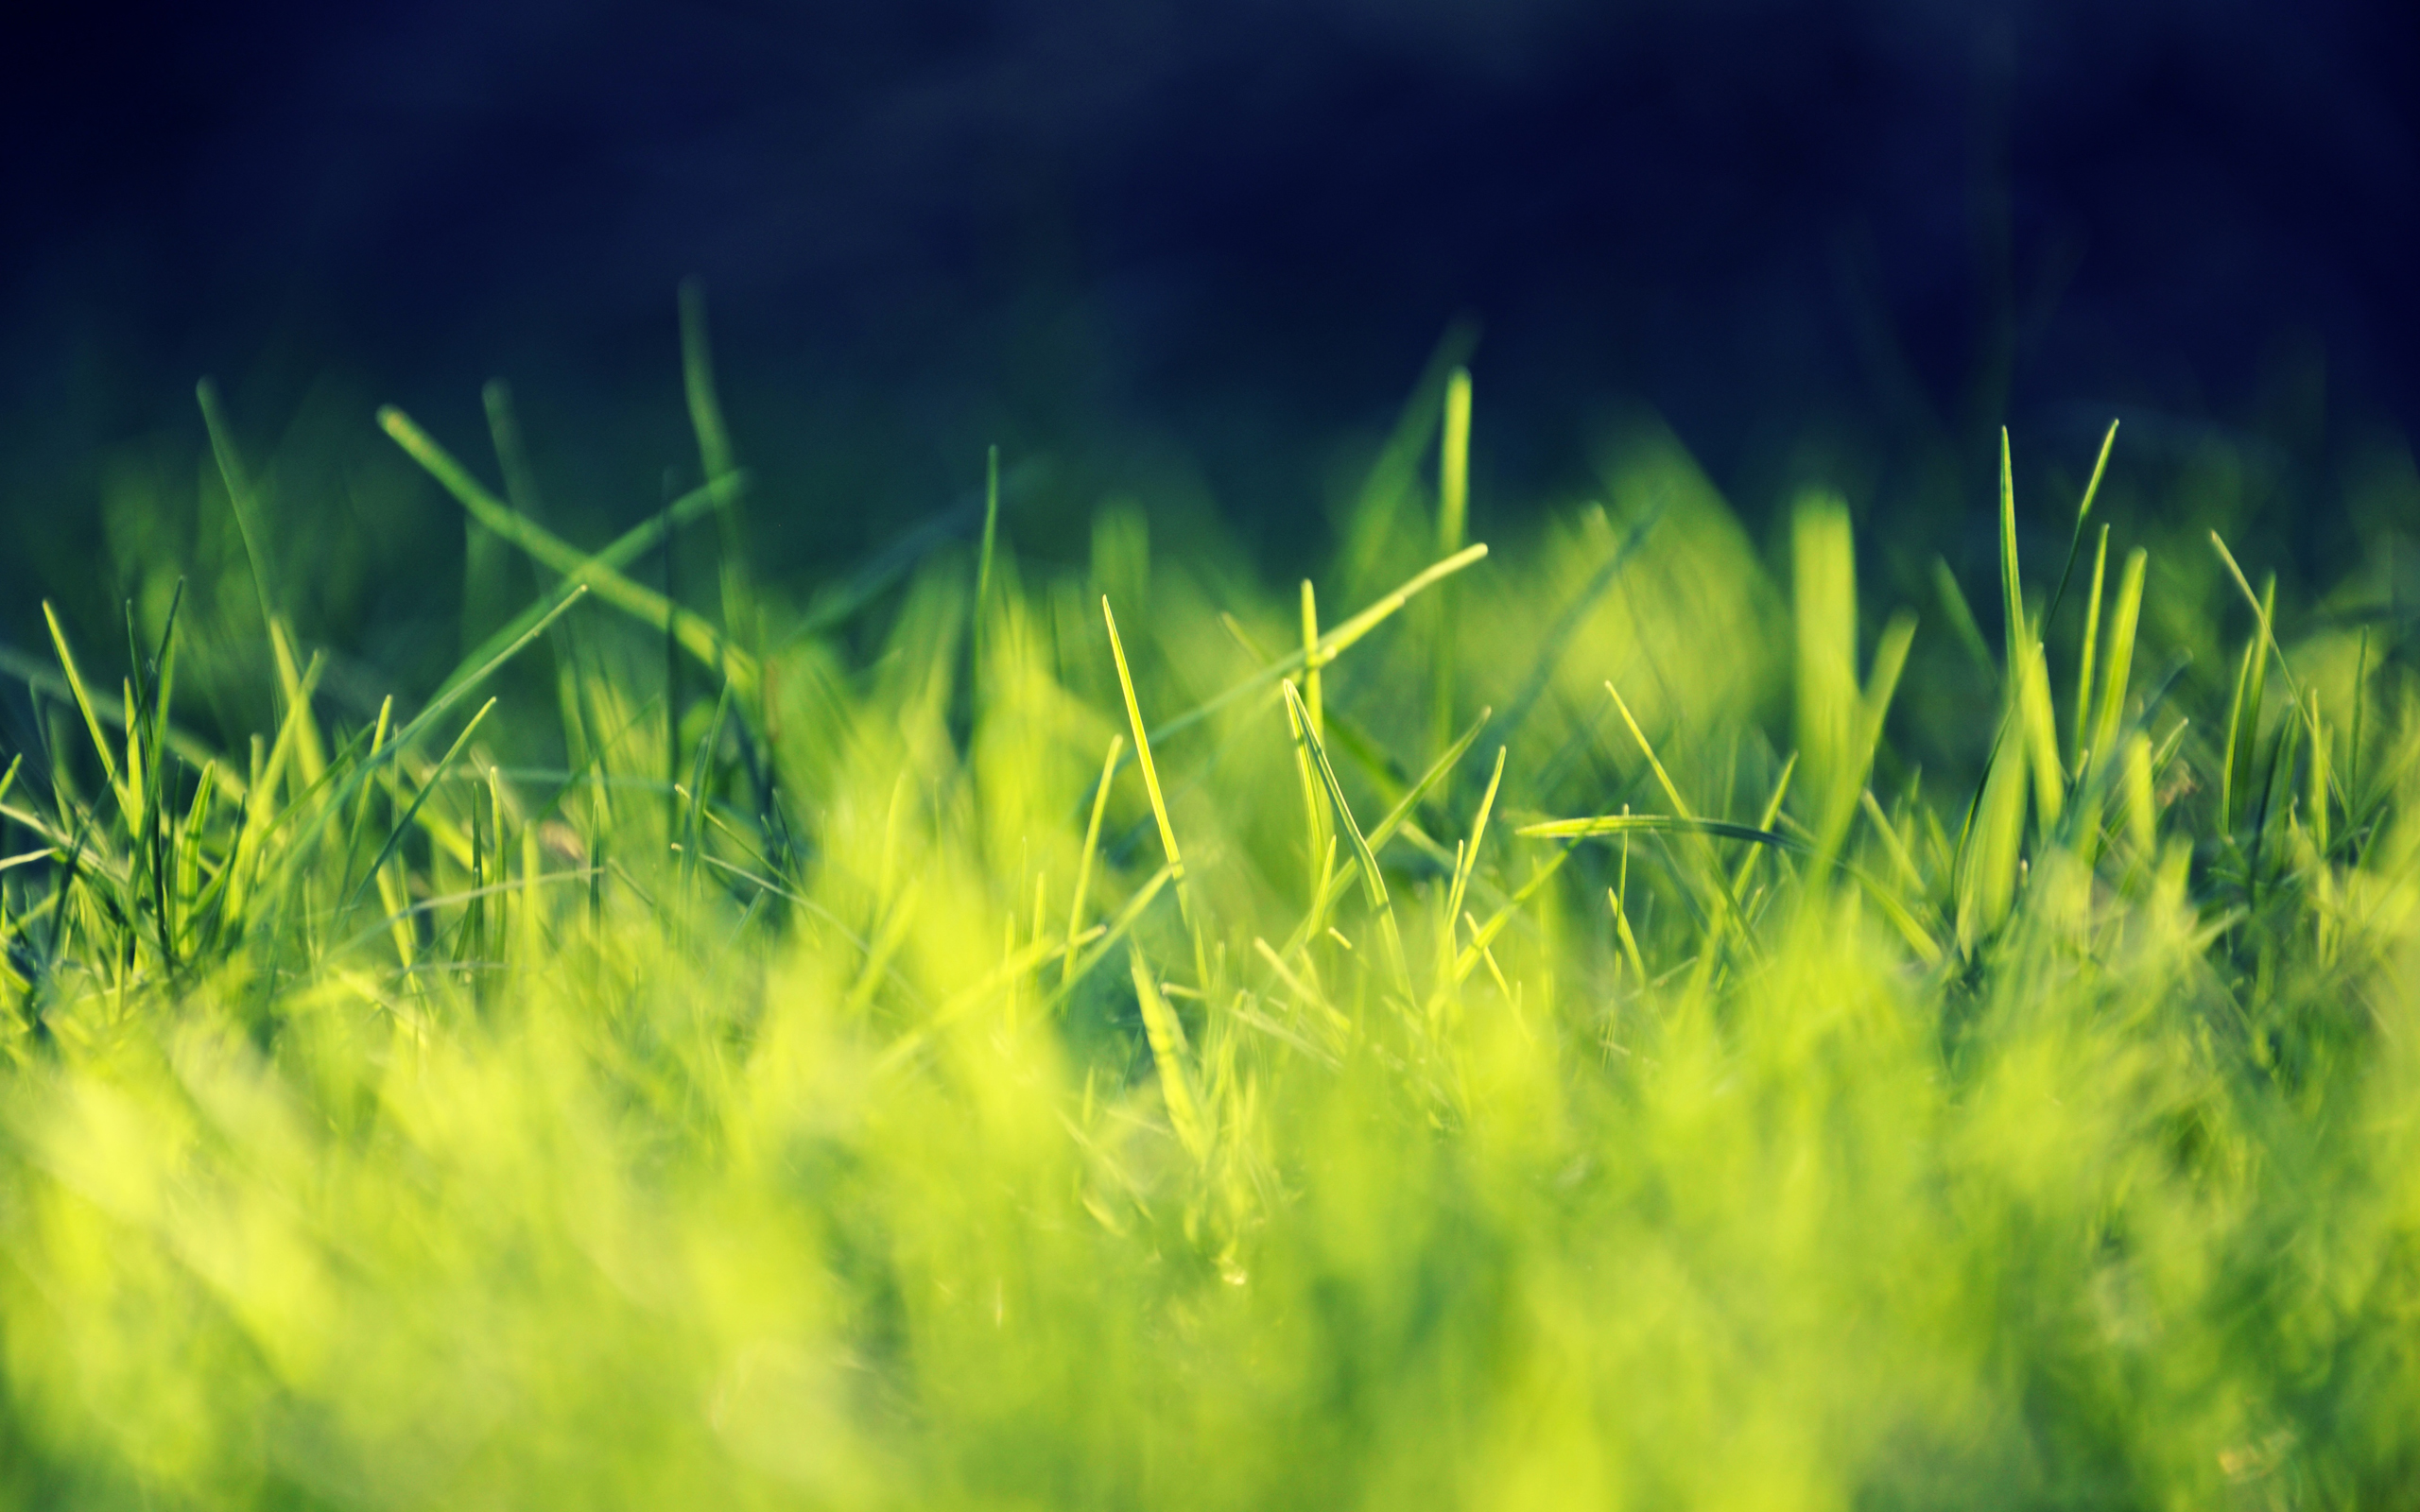 cool grass wallpaper 39859